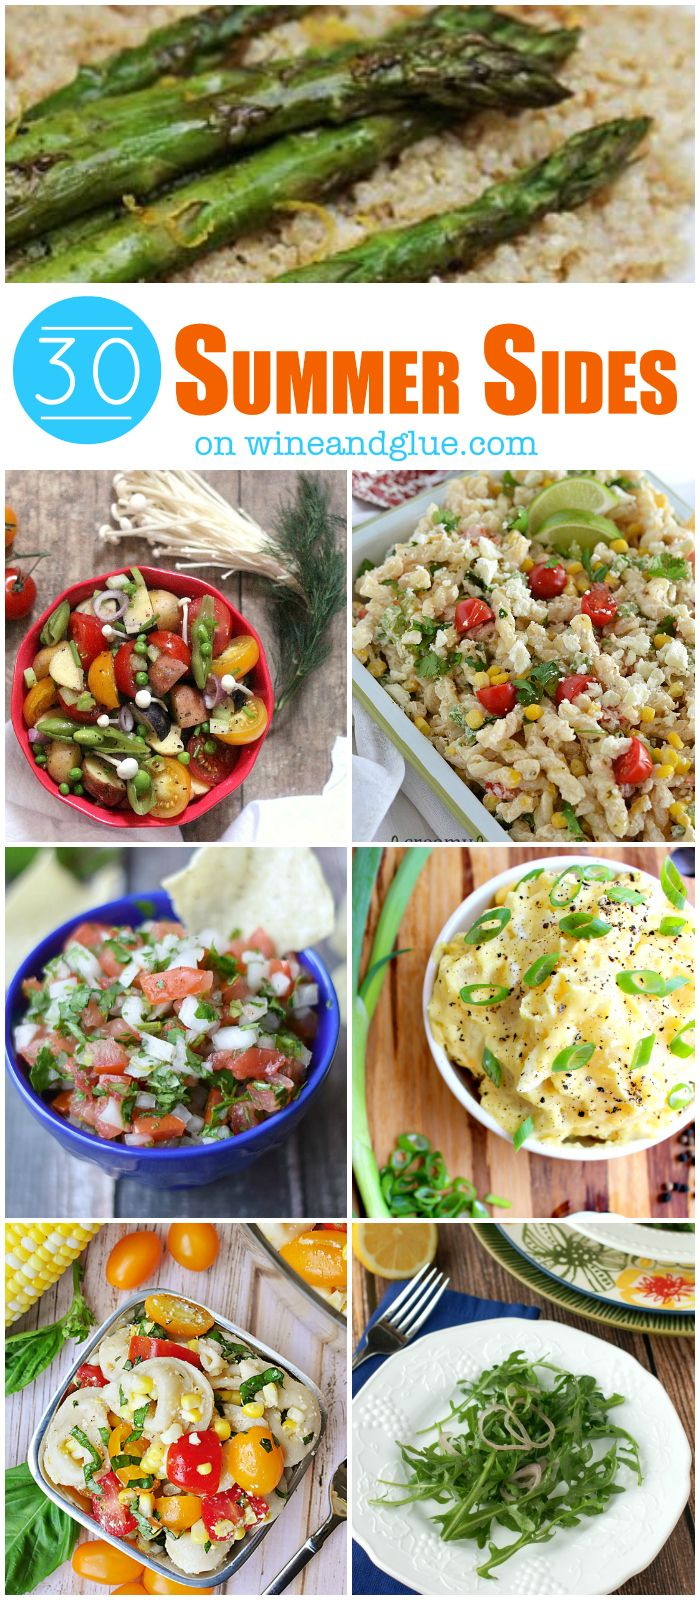 Thirty great seasonal side dishes!